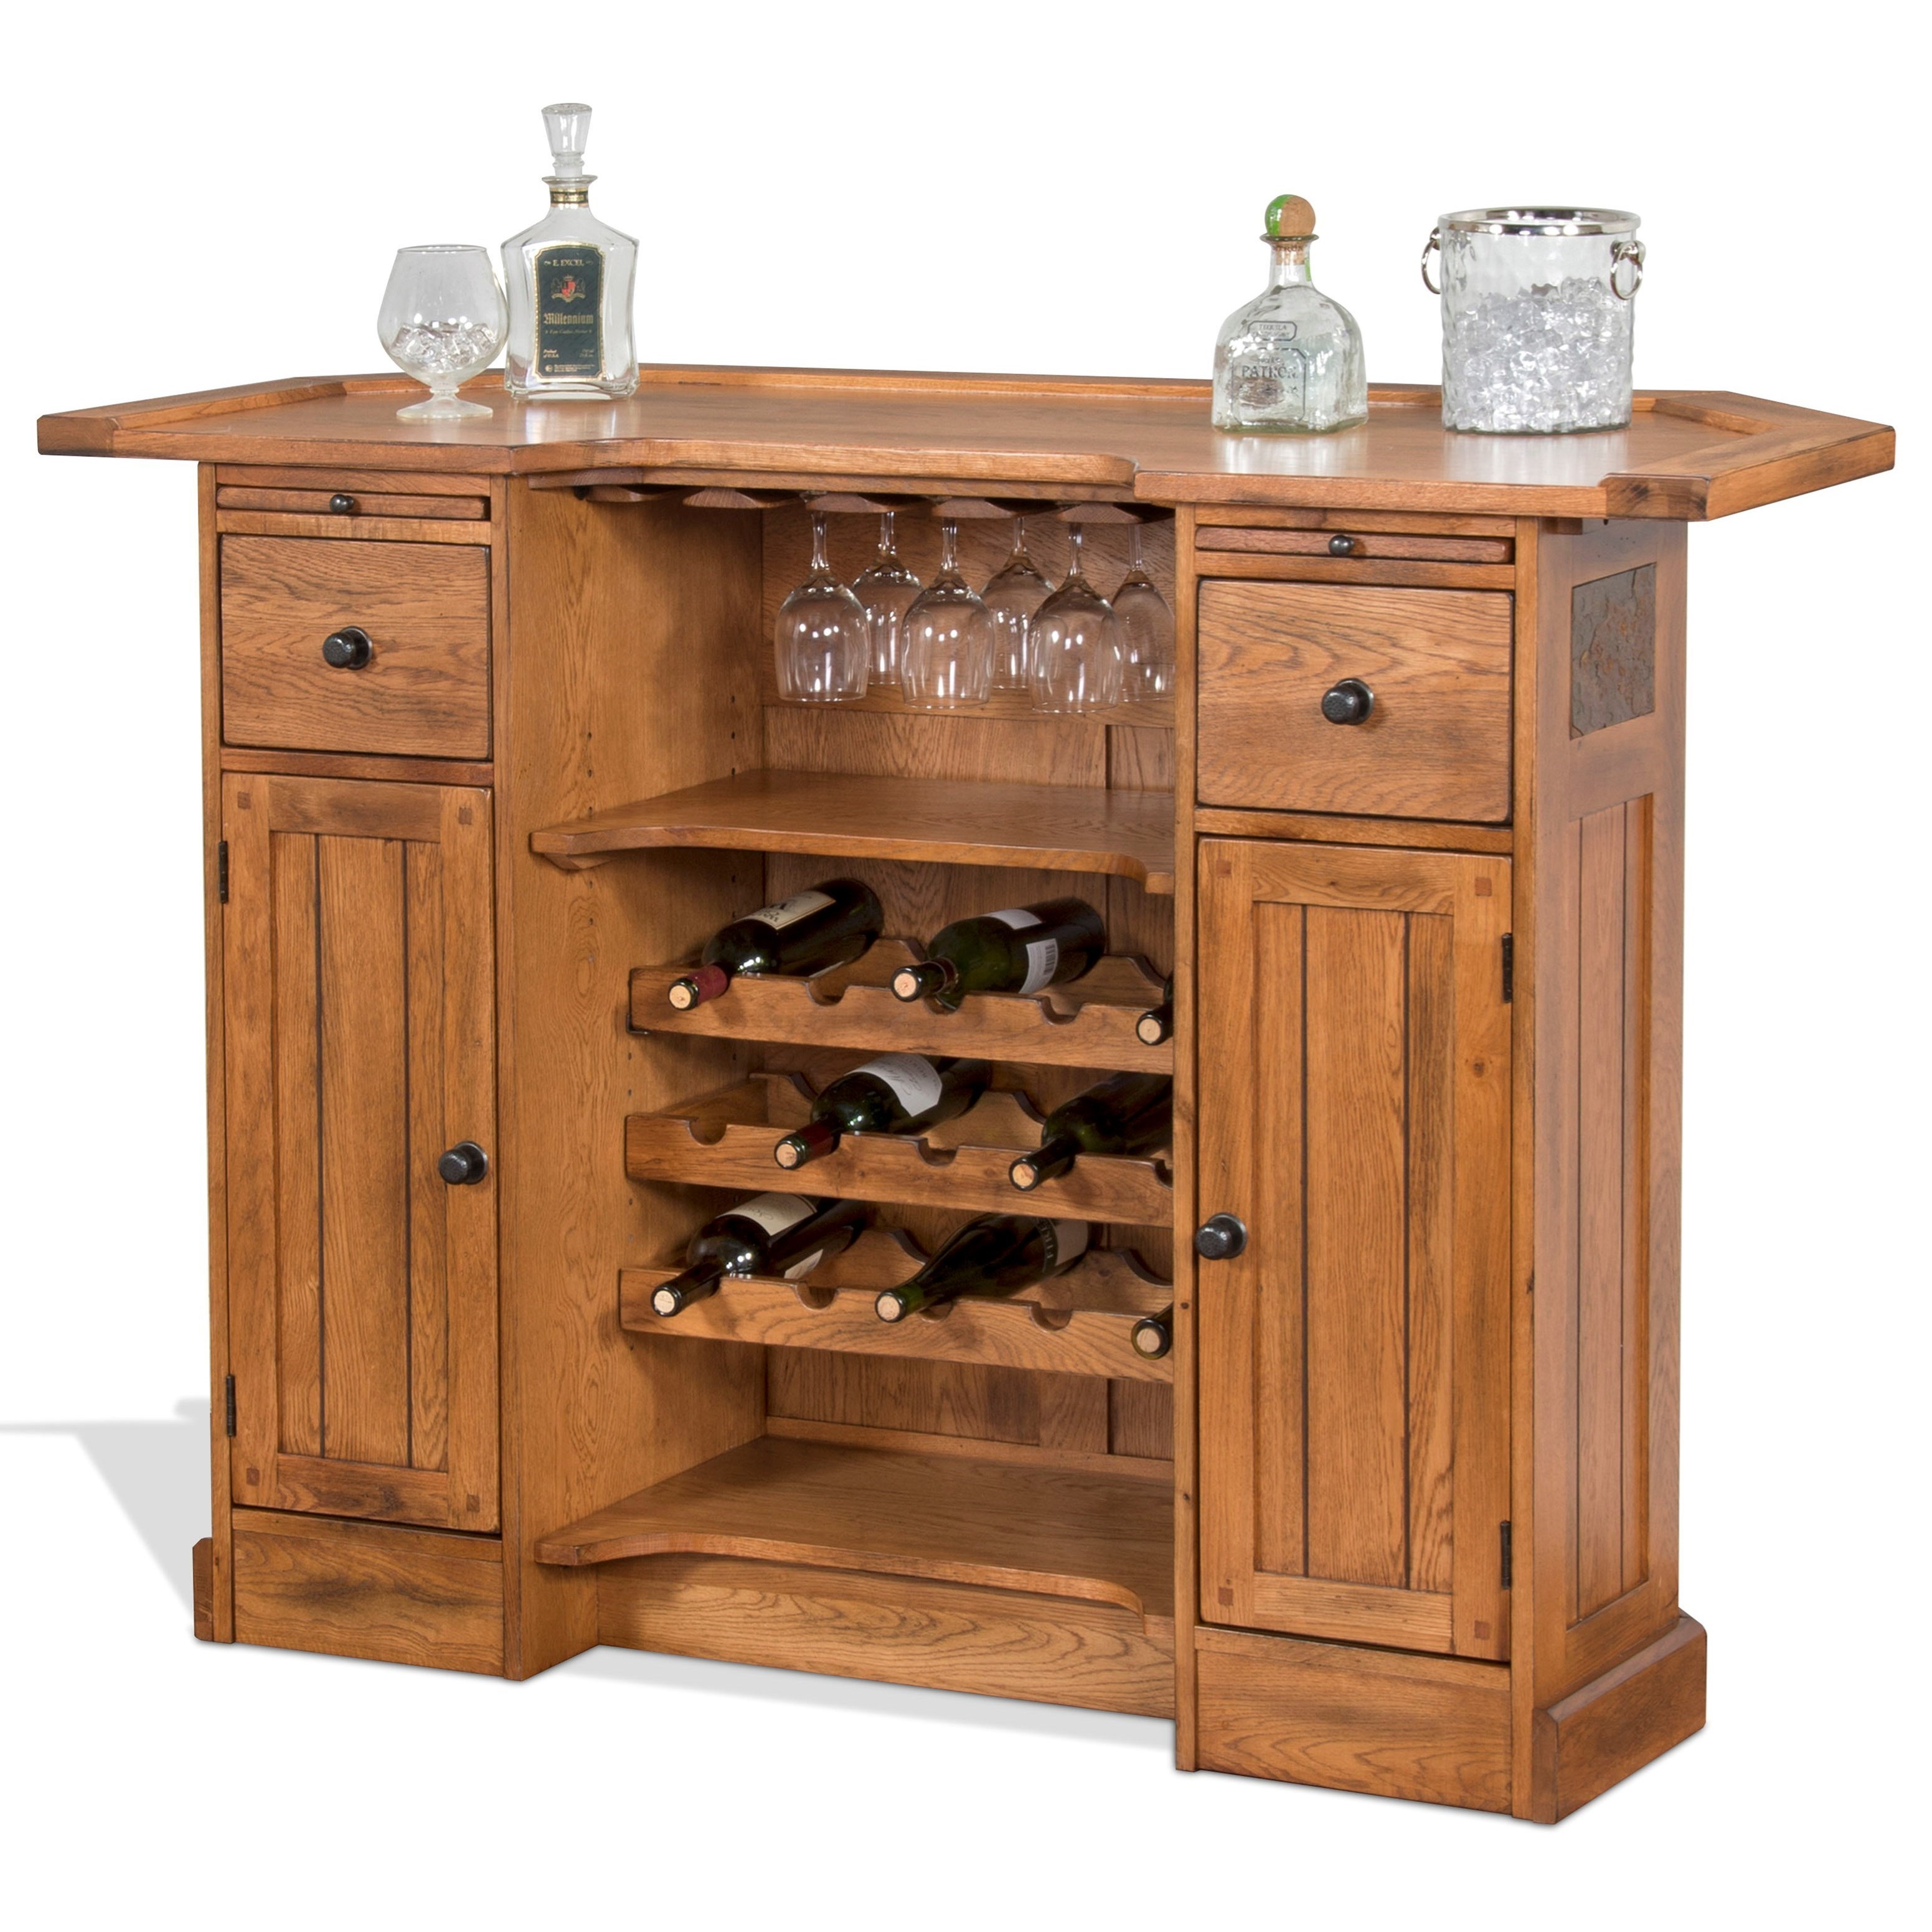 Sunny Designs Sedona Rustic Oak Bar